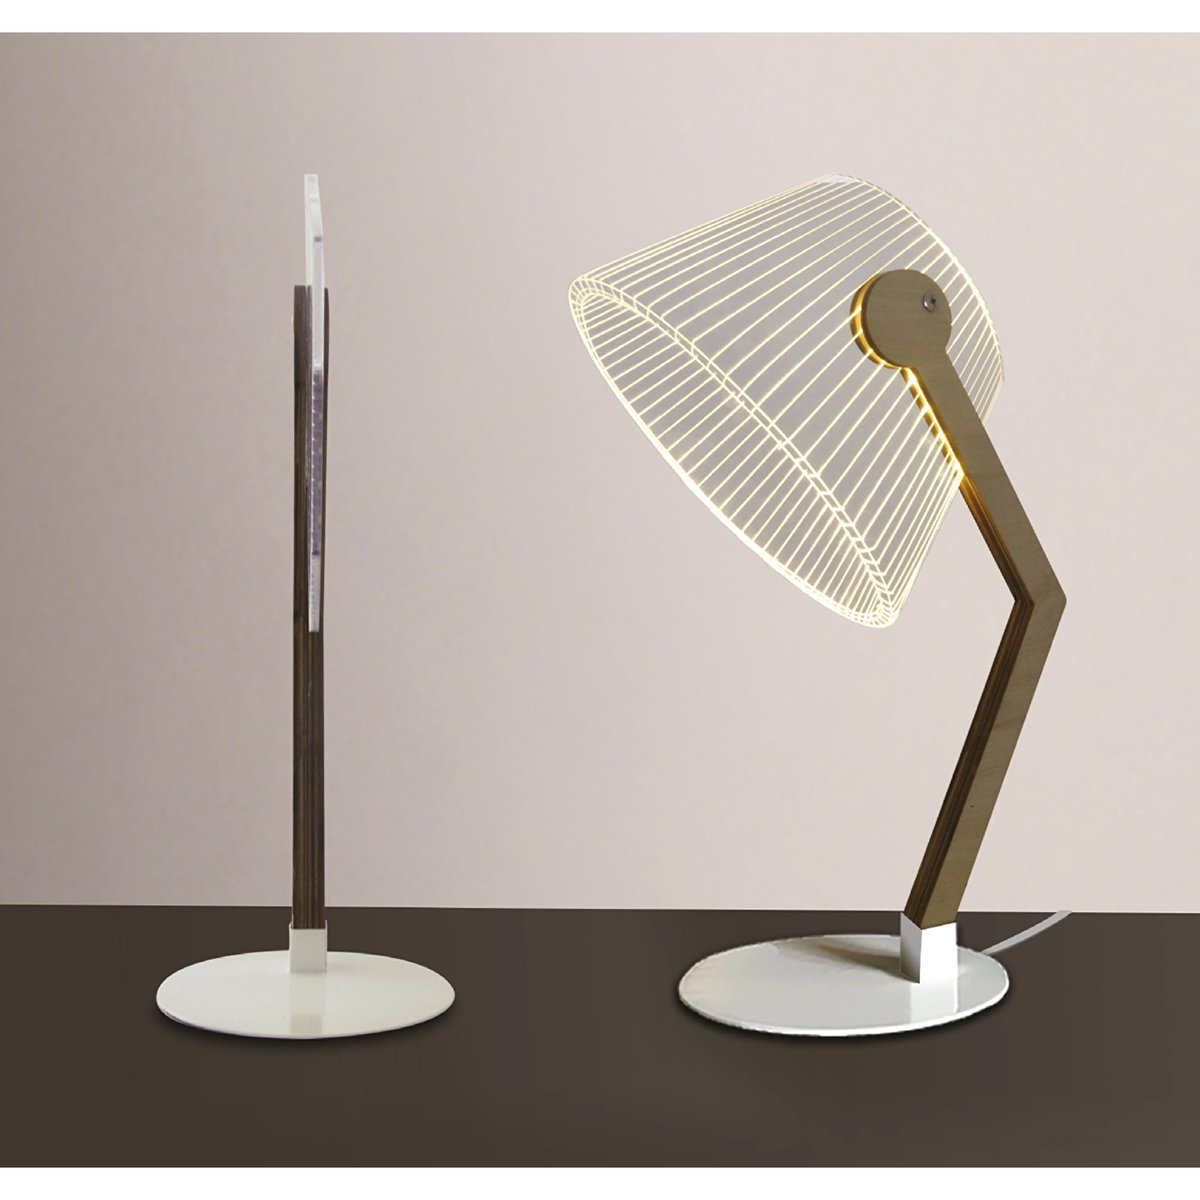 Science meets design in this modern and unique 3D Angle Light. When sat on your desk the sleek design of the light creates an optical illusion which tricks your eye into thinking it's a 3D lamp https://t.co/Vd0a1nGZIQ